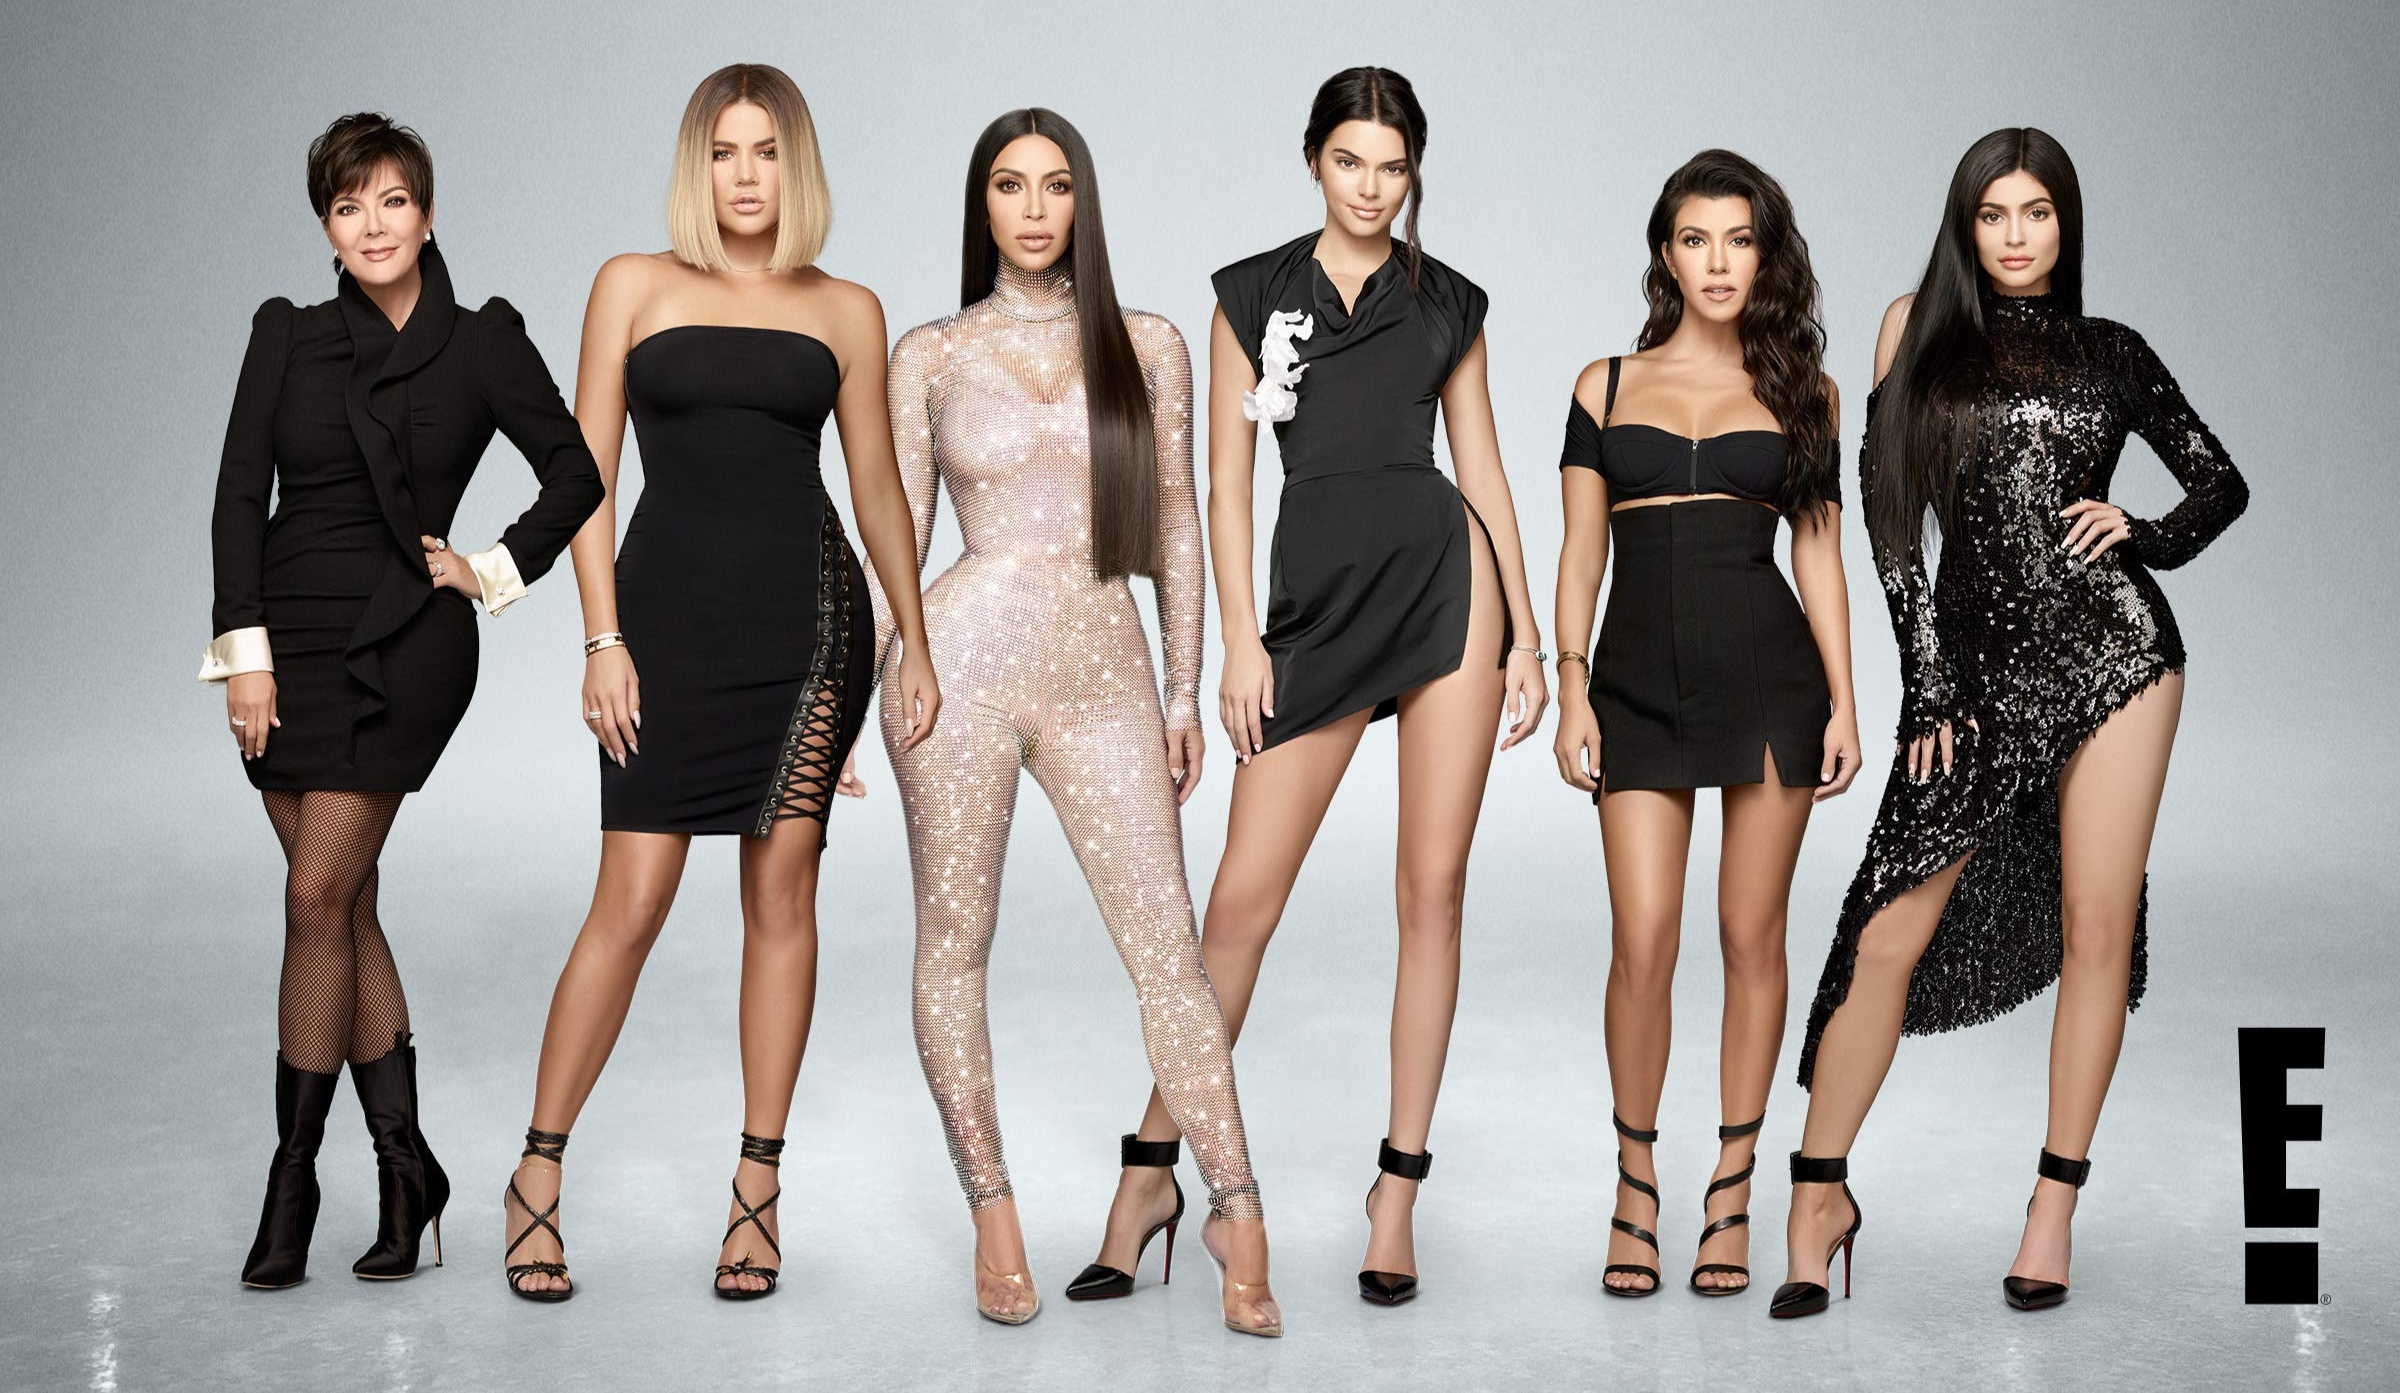 87b35a6c5 Keeping up With the Kardashian/Jenners' Copying Call-Outs and Legal ...